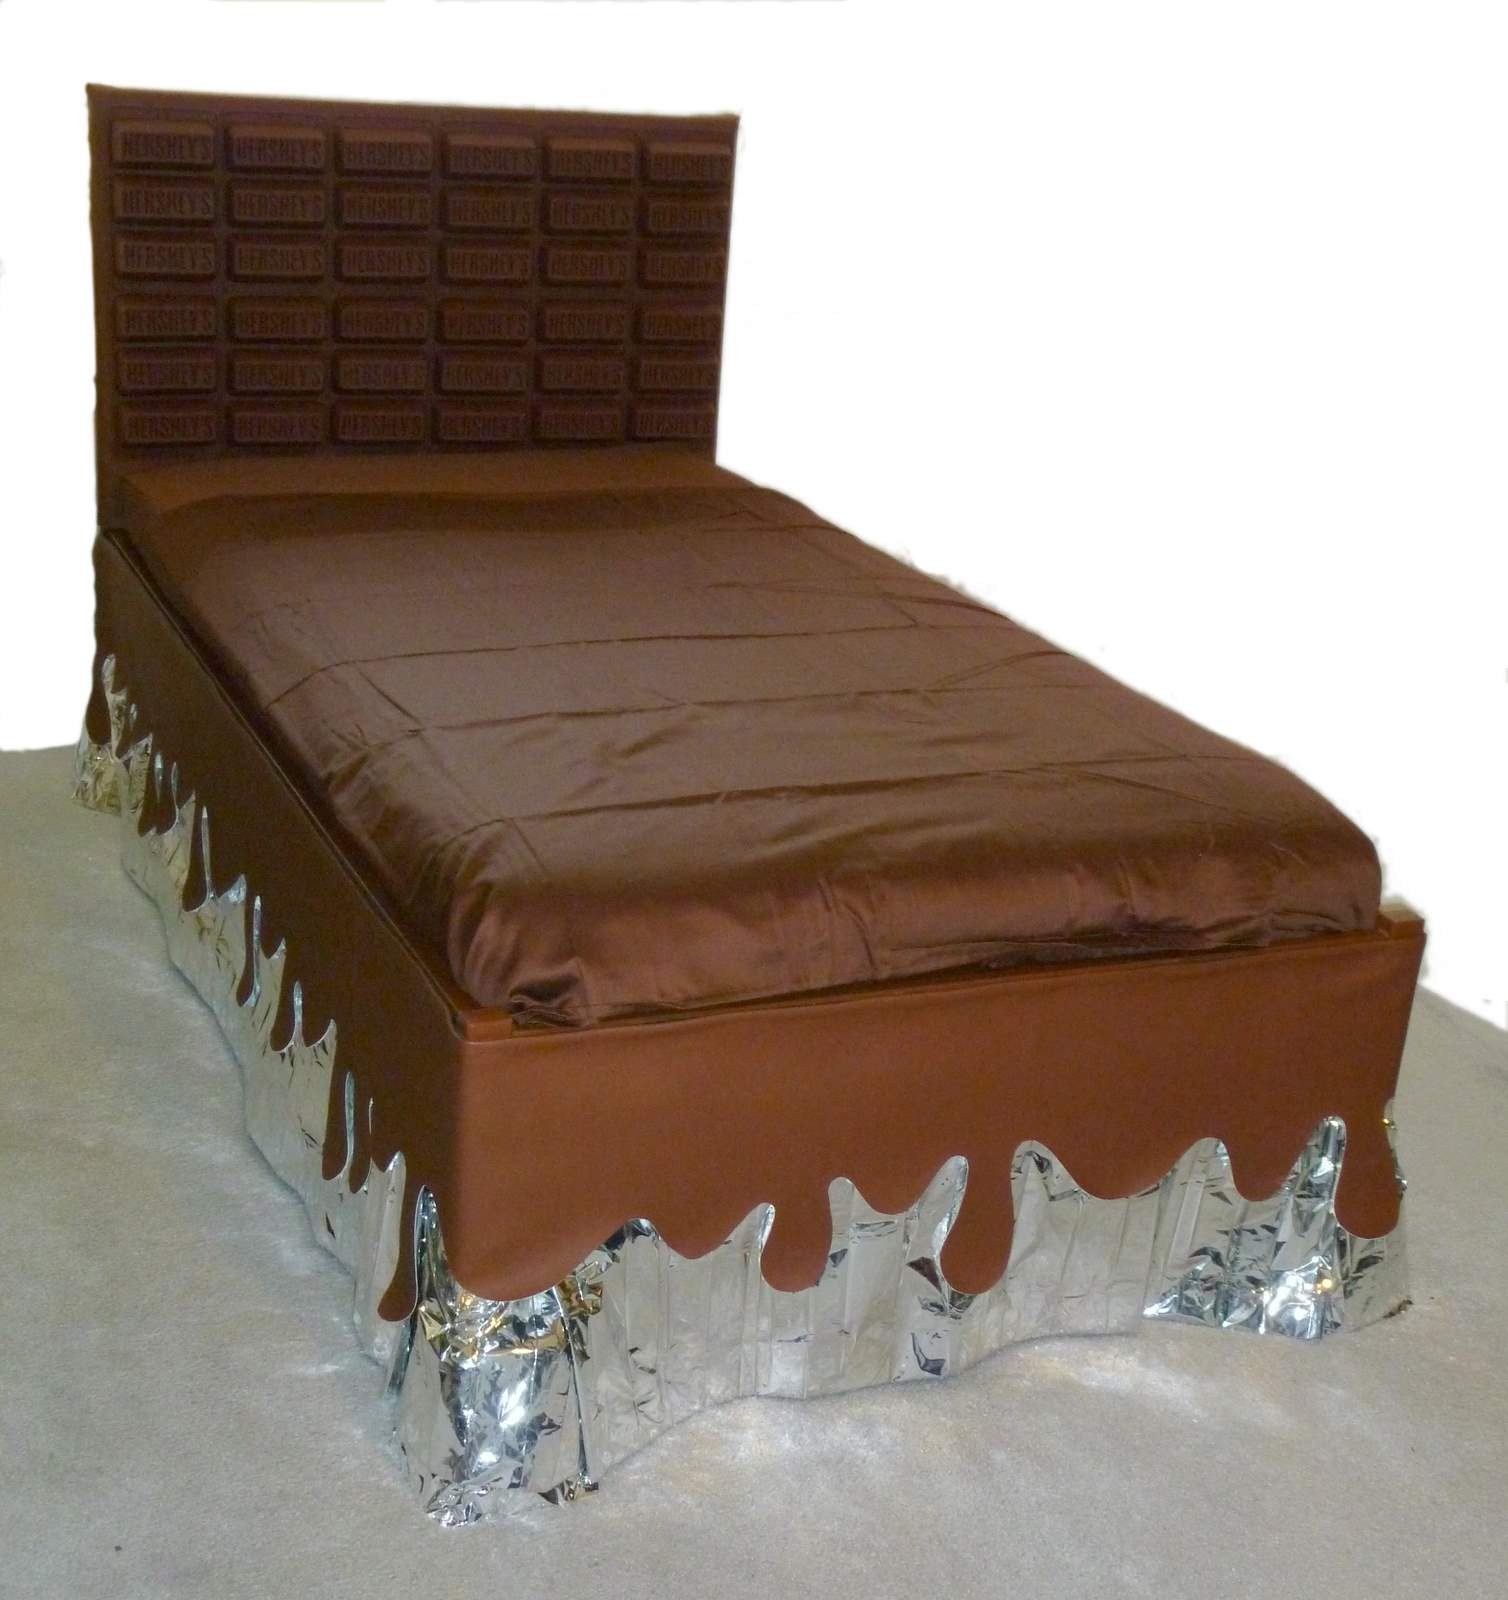 Make your own bed risers - Bed With Huge Chocolate Bar